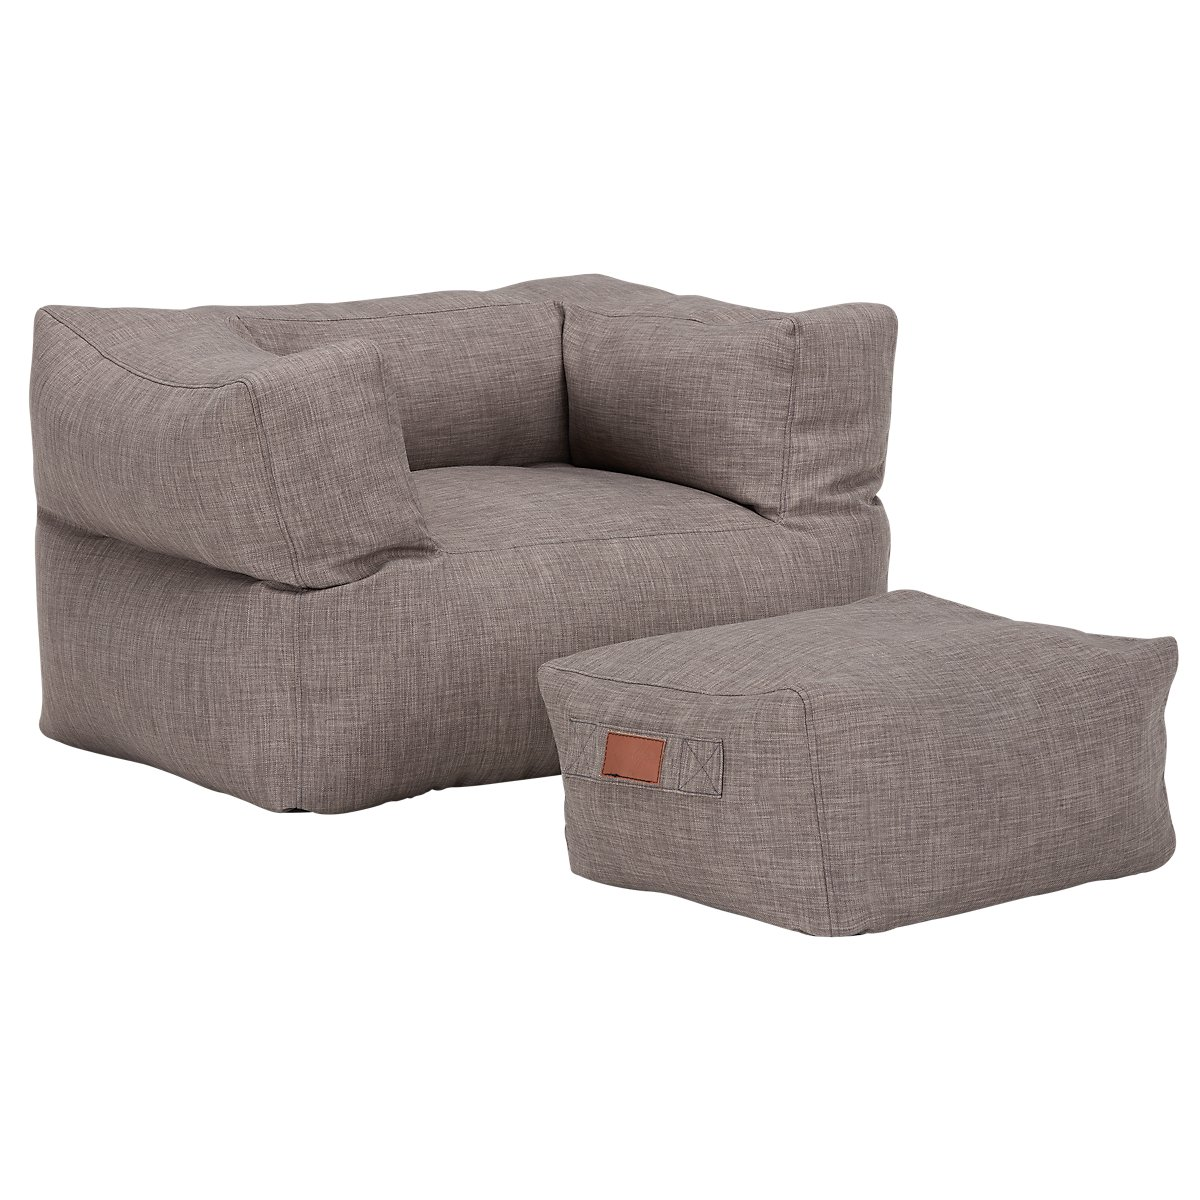 Cube Gray Chair & Ottoman